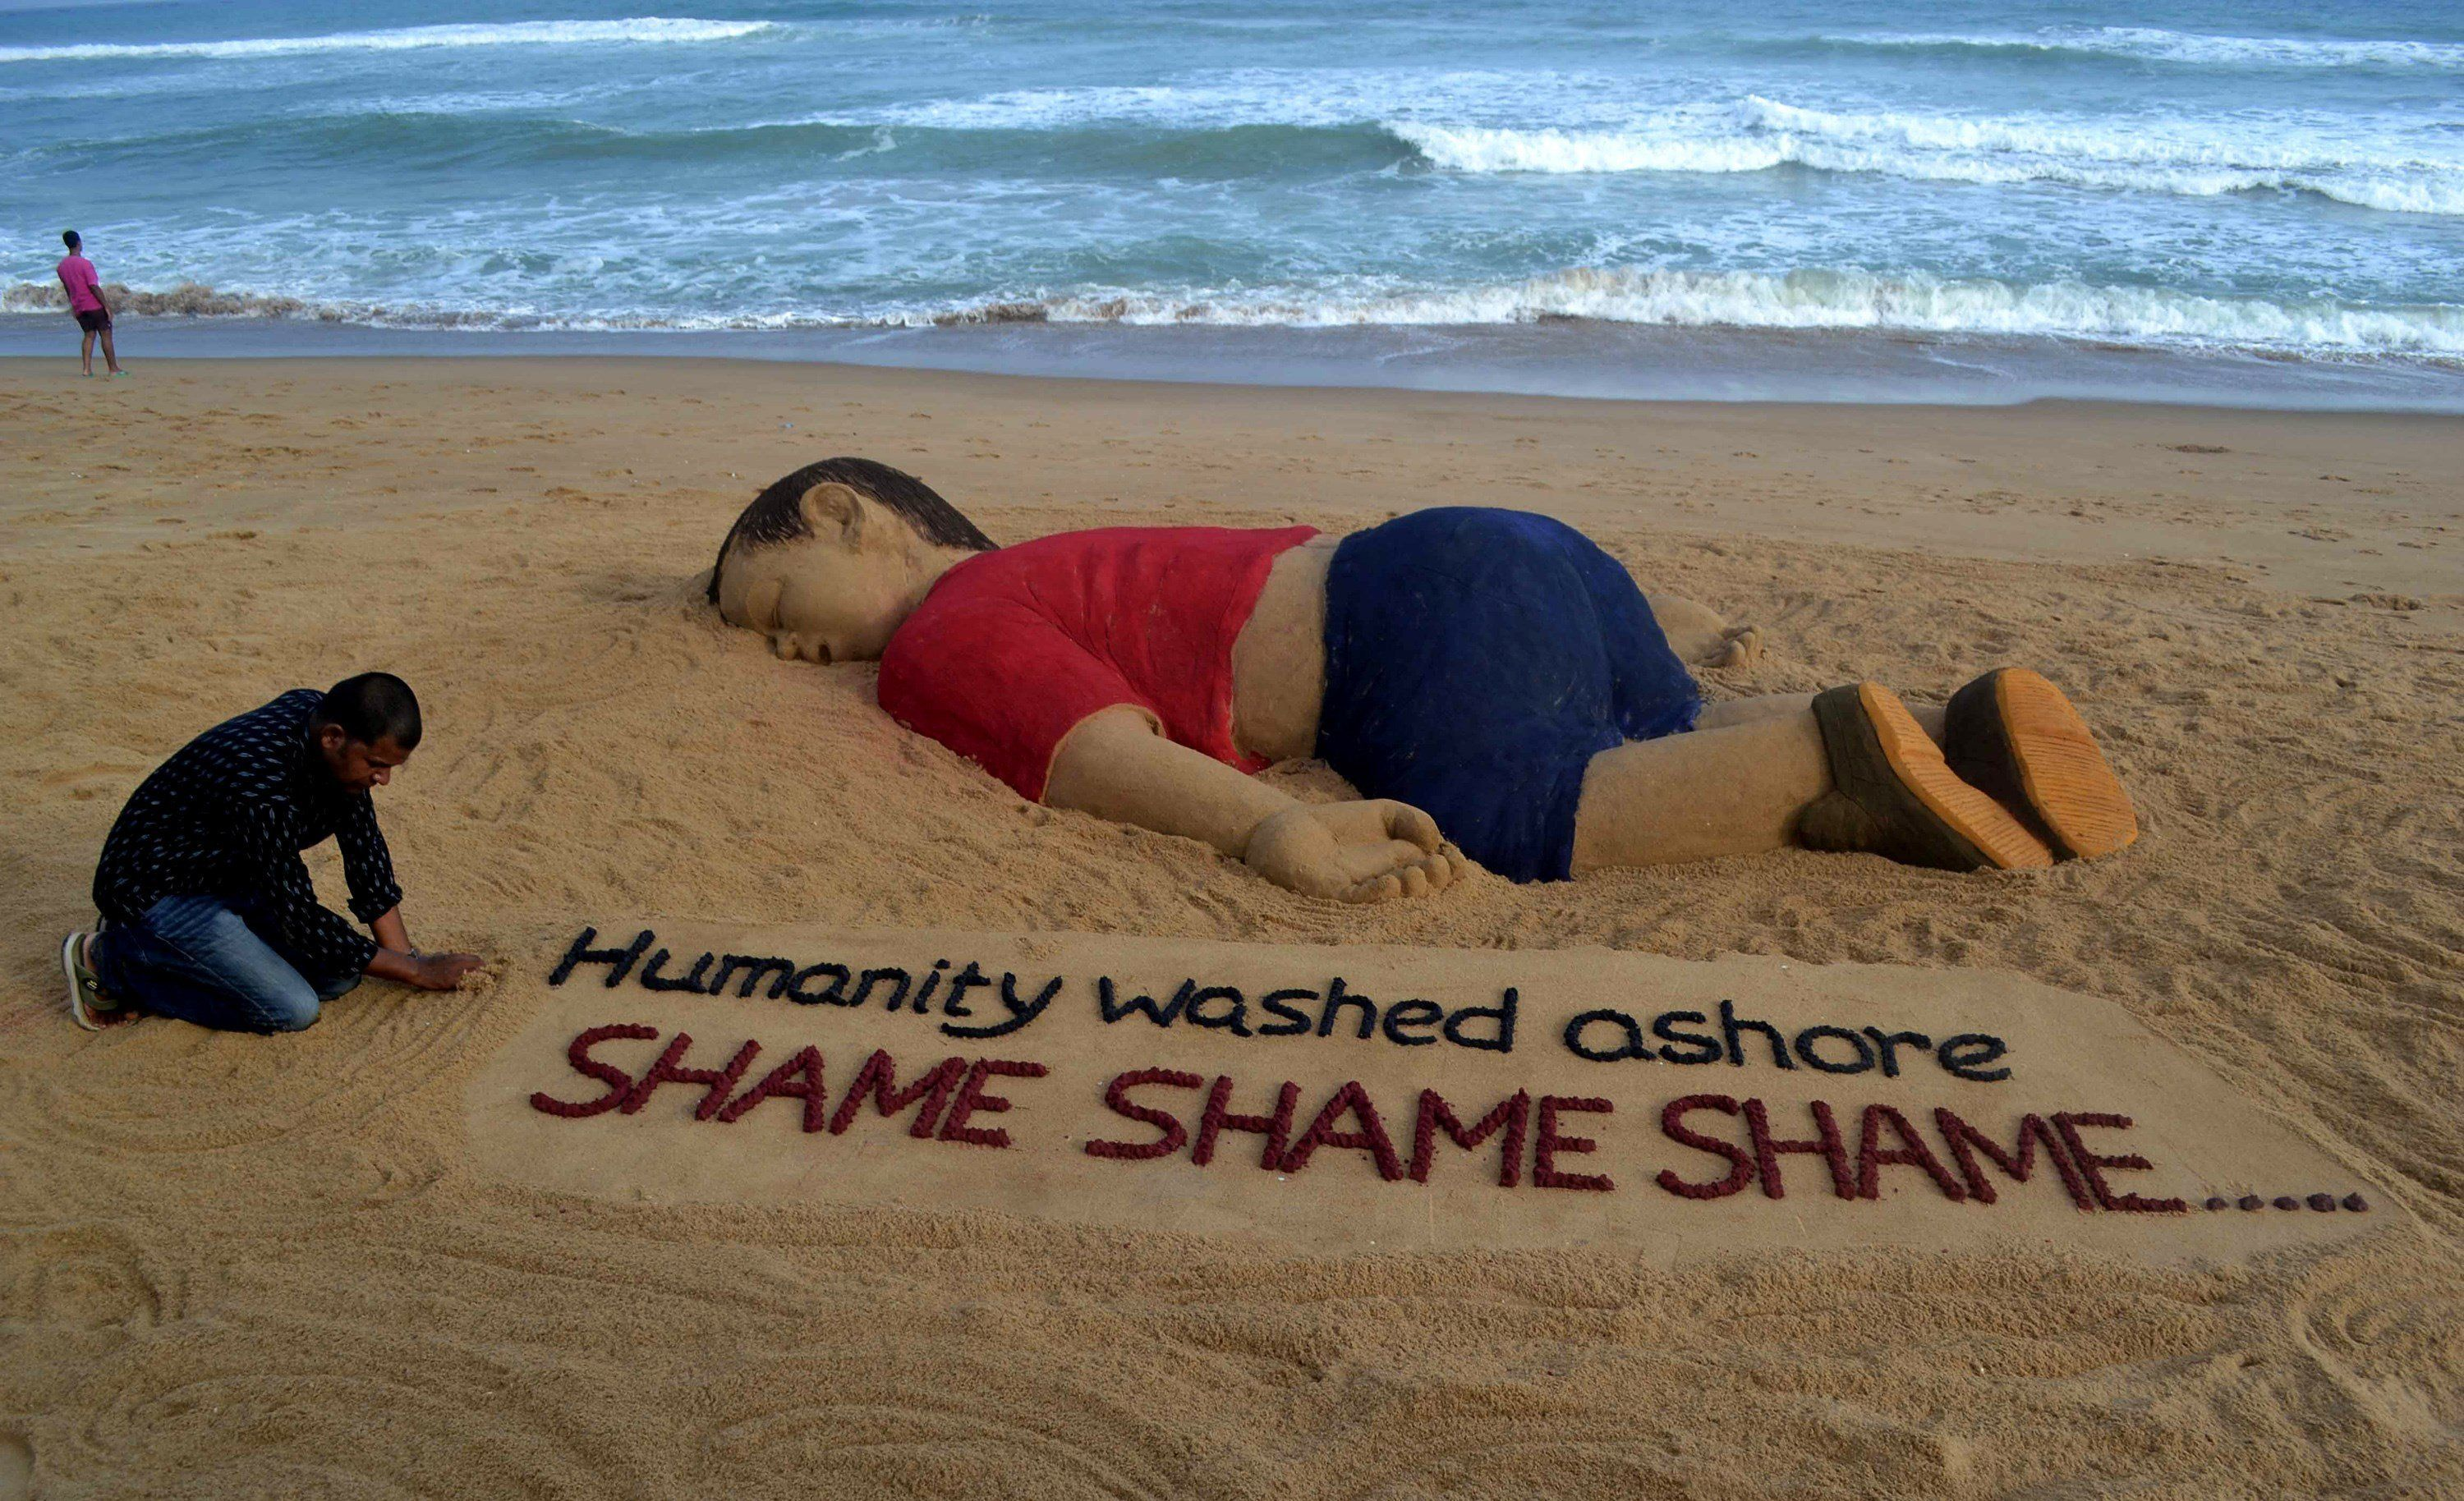 RESTRICTED TO EDITORIAL USE, MANDATORY MENTION OF THE ARTIST UPON PUBLICATION, TO ILLUSTRATE THE EVENT AS SPECIFIED IN THE CAPTION Indian artist Sudarsan Pattnaik works on a sand sculpture depicting drowned Syrian boy Aylan Kurdi at Puri beach, some 65 kilometers away from Bhubaneswar, on September 4, 2015. Charities helping refugees saw a surge in donations on September 4 across Europe as people shocked by the heart-rending images of a drowned Syrian boy on a Turkish beach dug deep to help out. The photos of the lifeless body of three-year-old Aylan Kurdi, lying on a beach in Bodrum, Turkey, have triggered a wave of emotion across the continent, despite deep divisions among European governments on how to deal with the crisis.  AFP PHOTO/ASIT KUMAR        (Photo credit should read ASIT KUMAR/AFP/Getty Images)